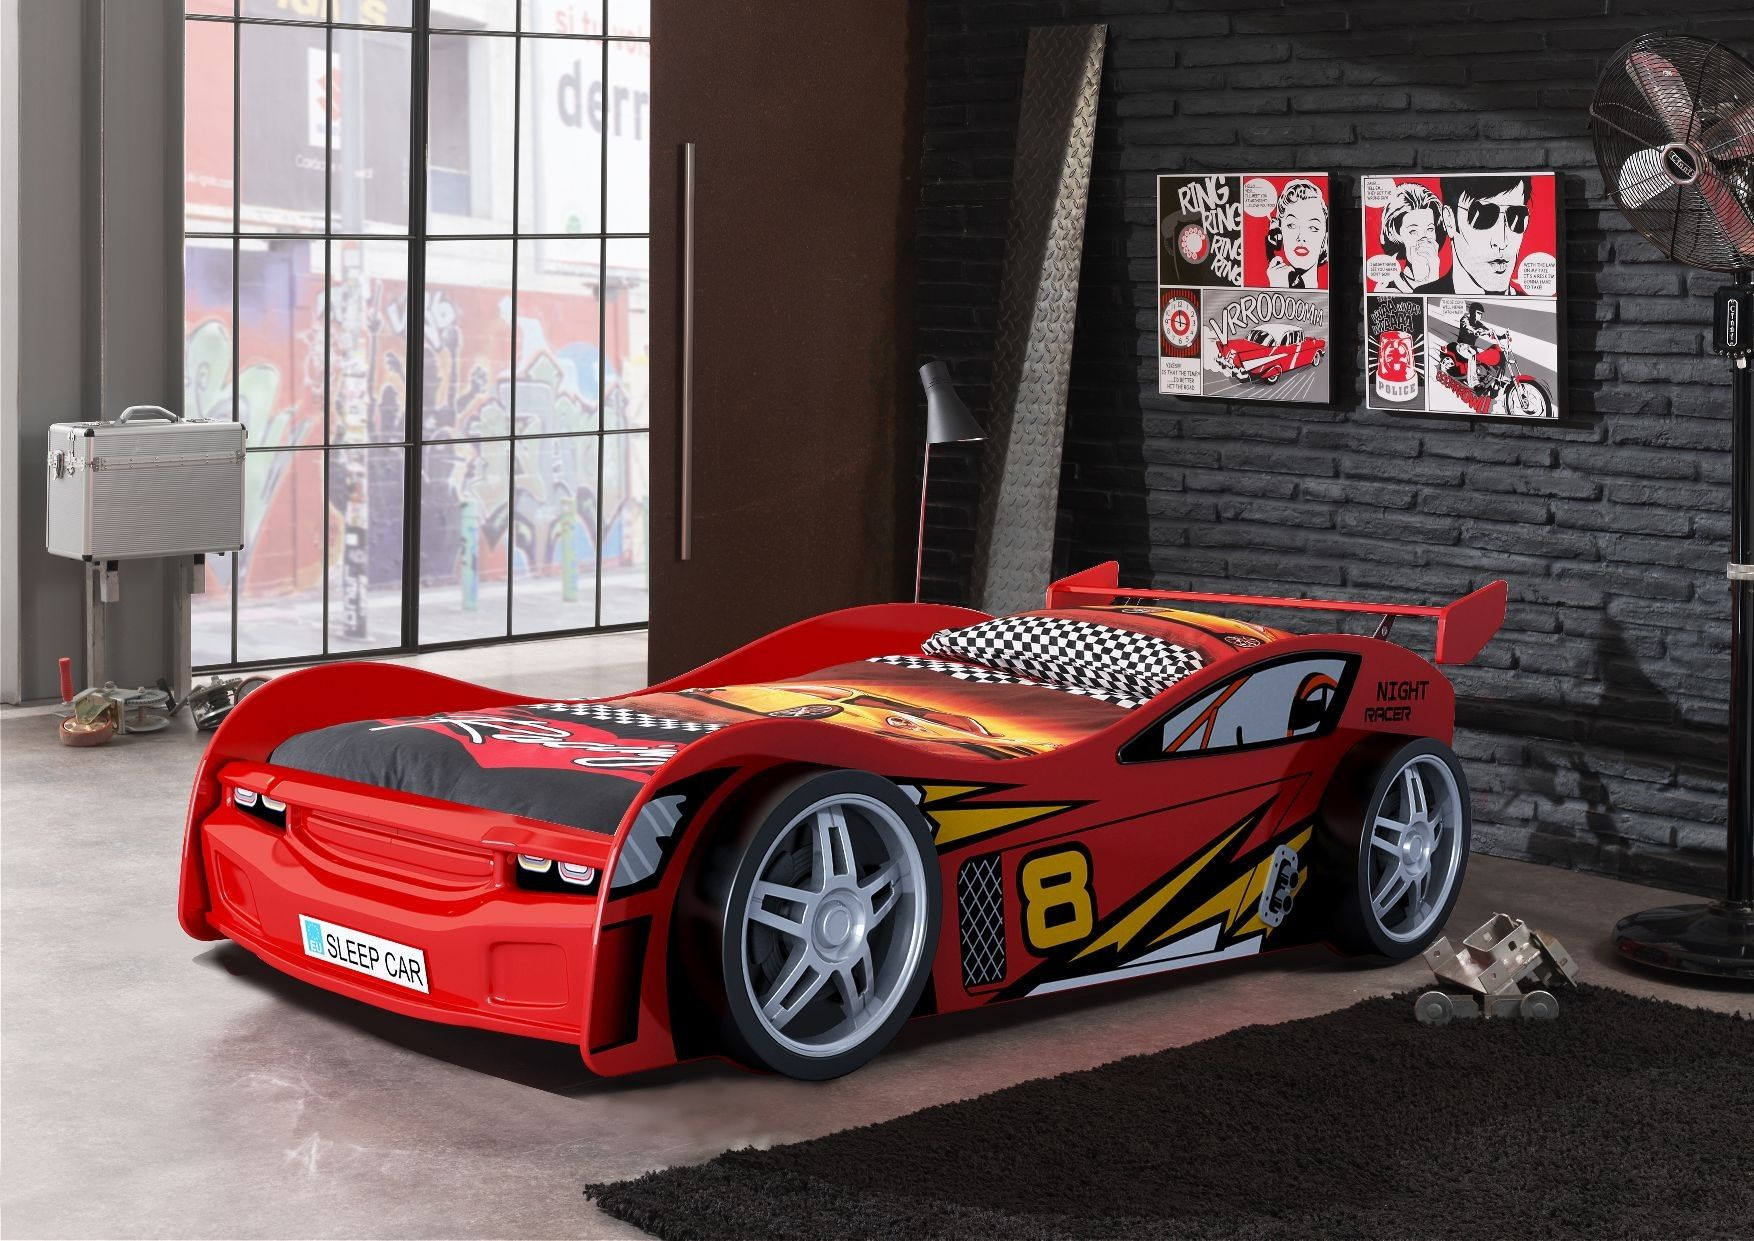 night racer kids car bed with racing themed linen and garage style dcor available at